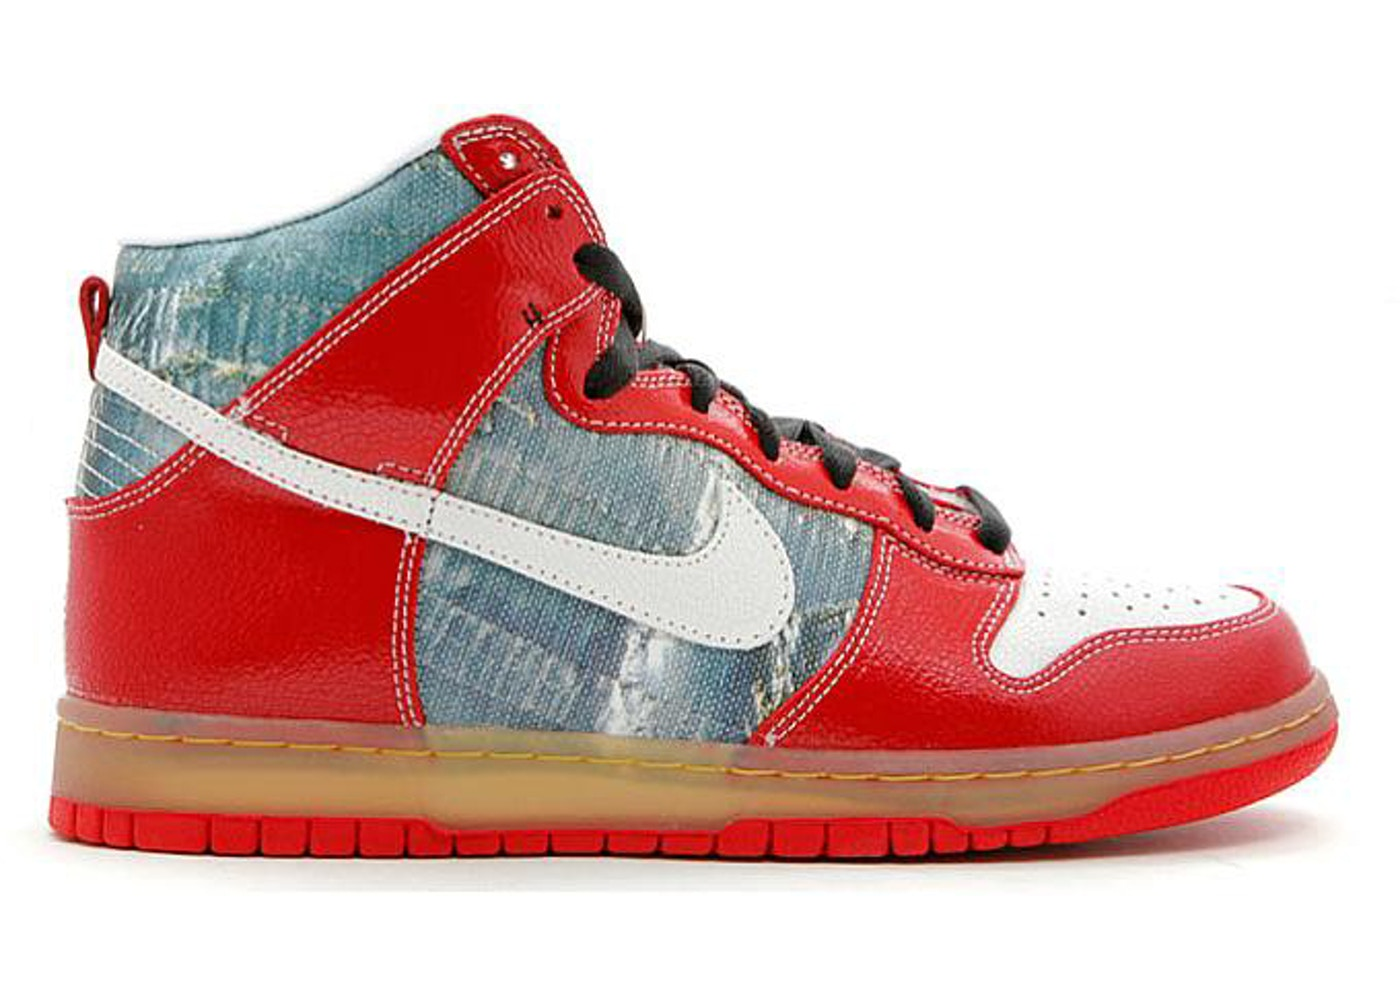 5ec6599c Nike Dunk SB High Shoe Goo - 313171-012